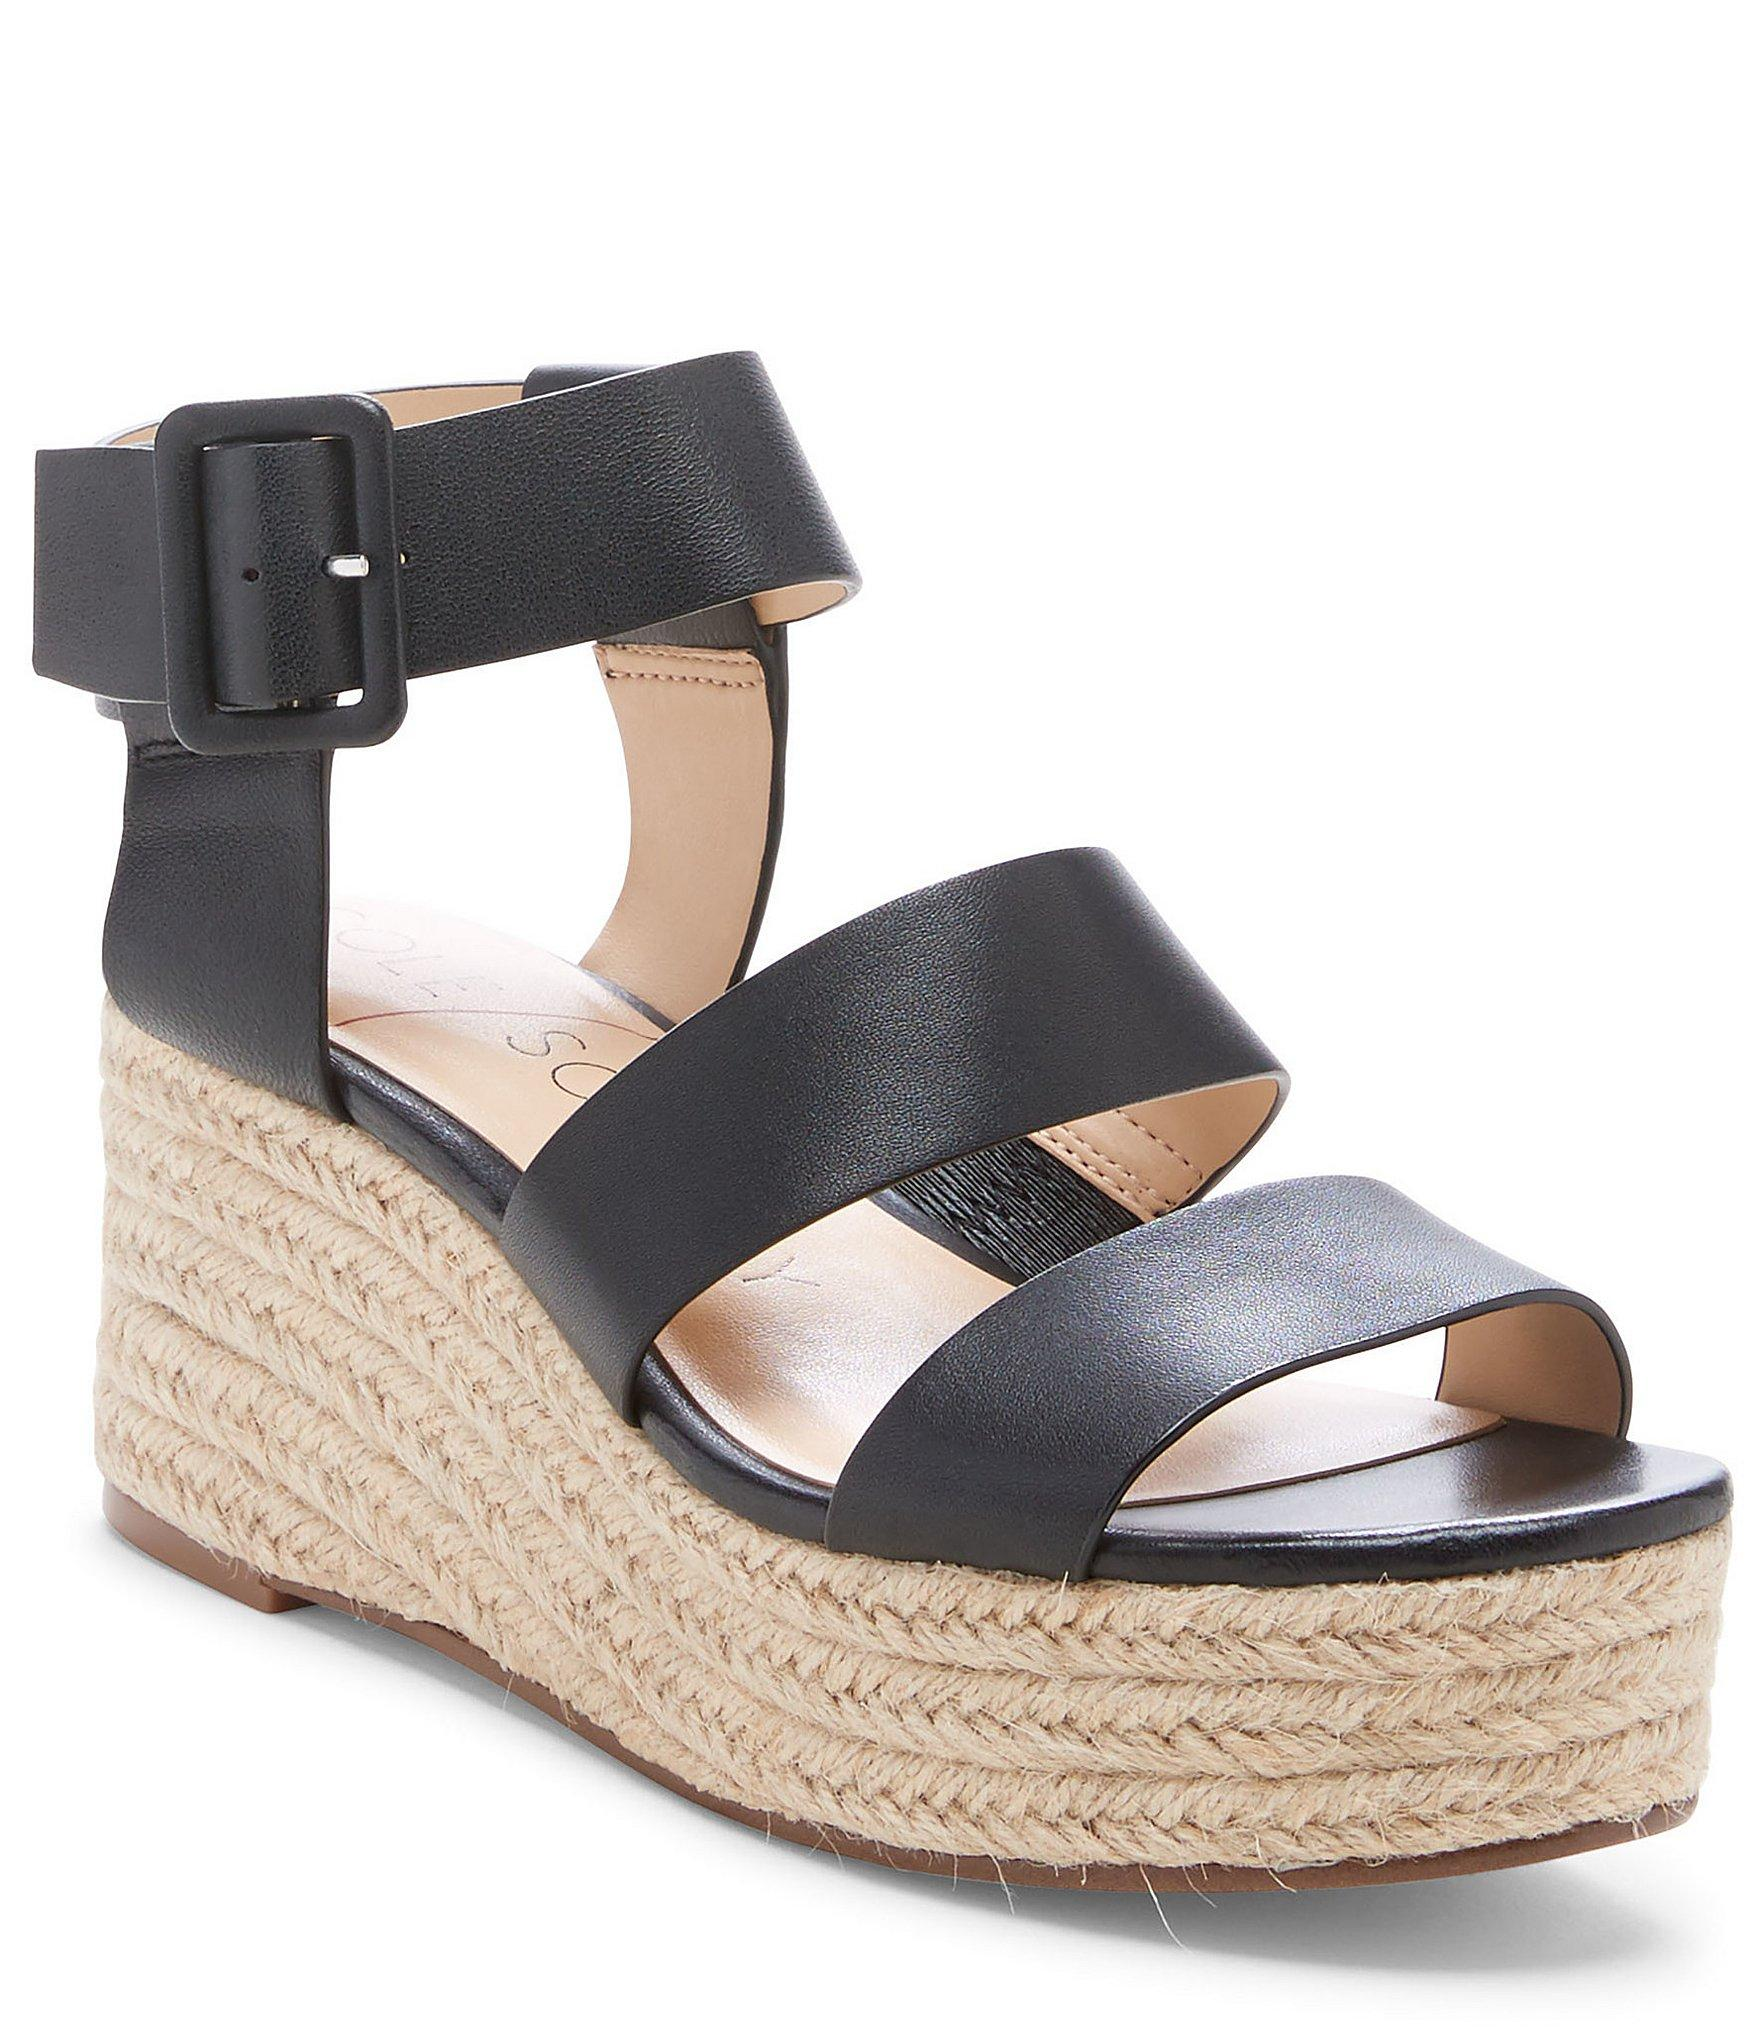 c79f7f059050 Lyst - Sole Society Anisa Leather Wedge Espadrille Sandals in Black